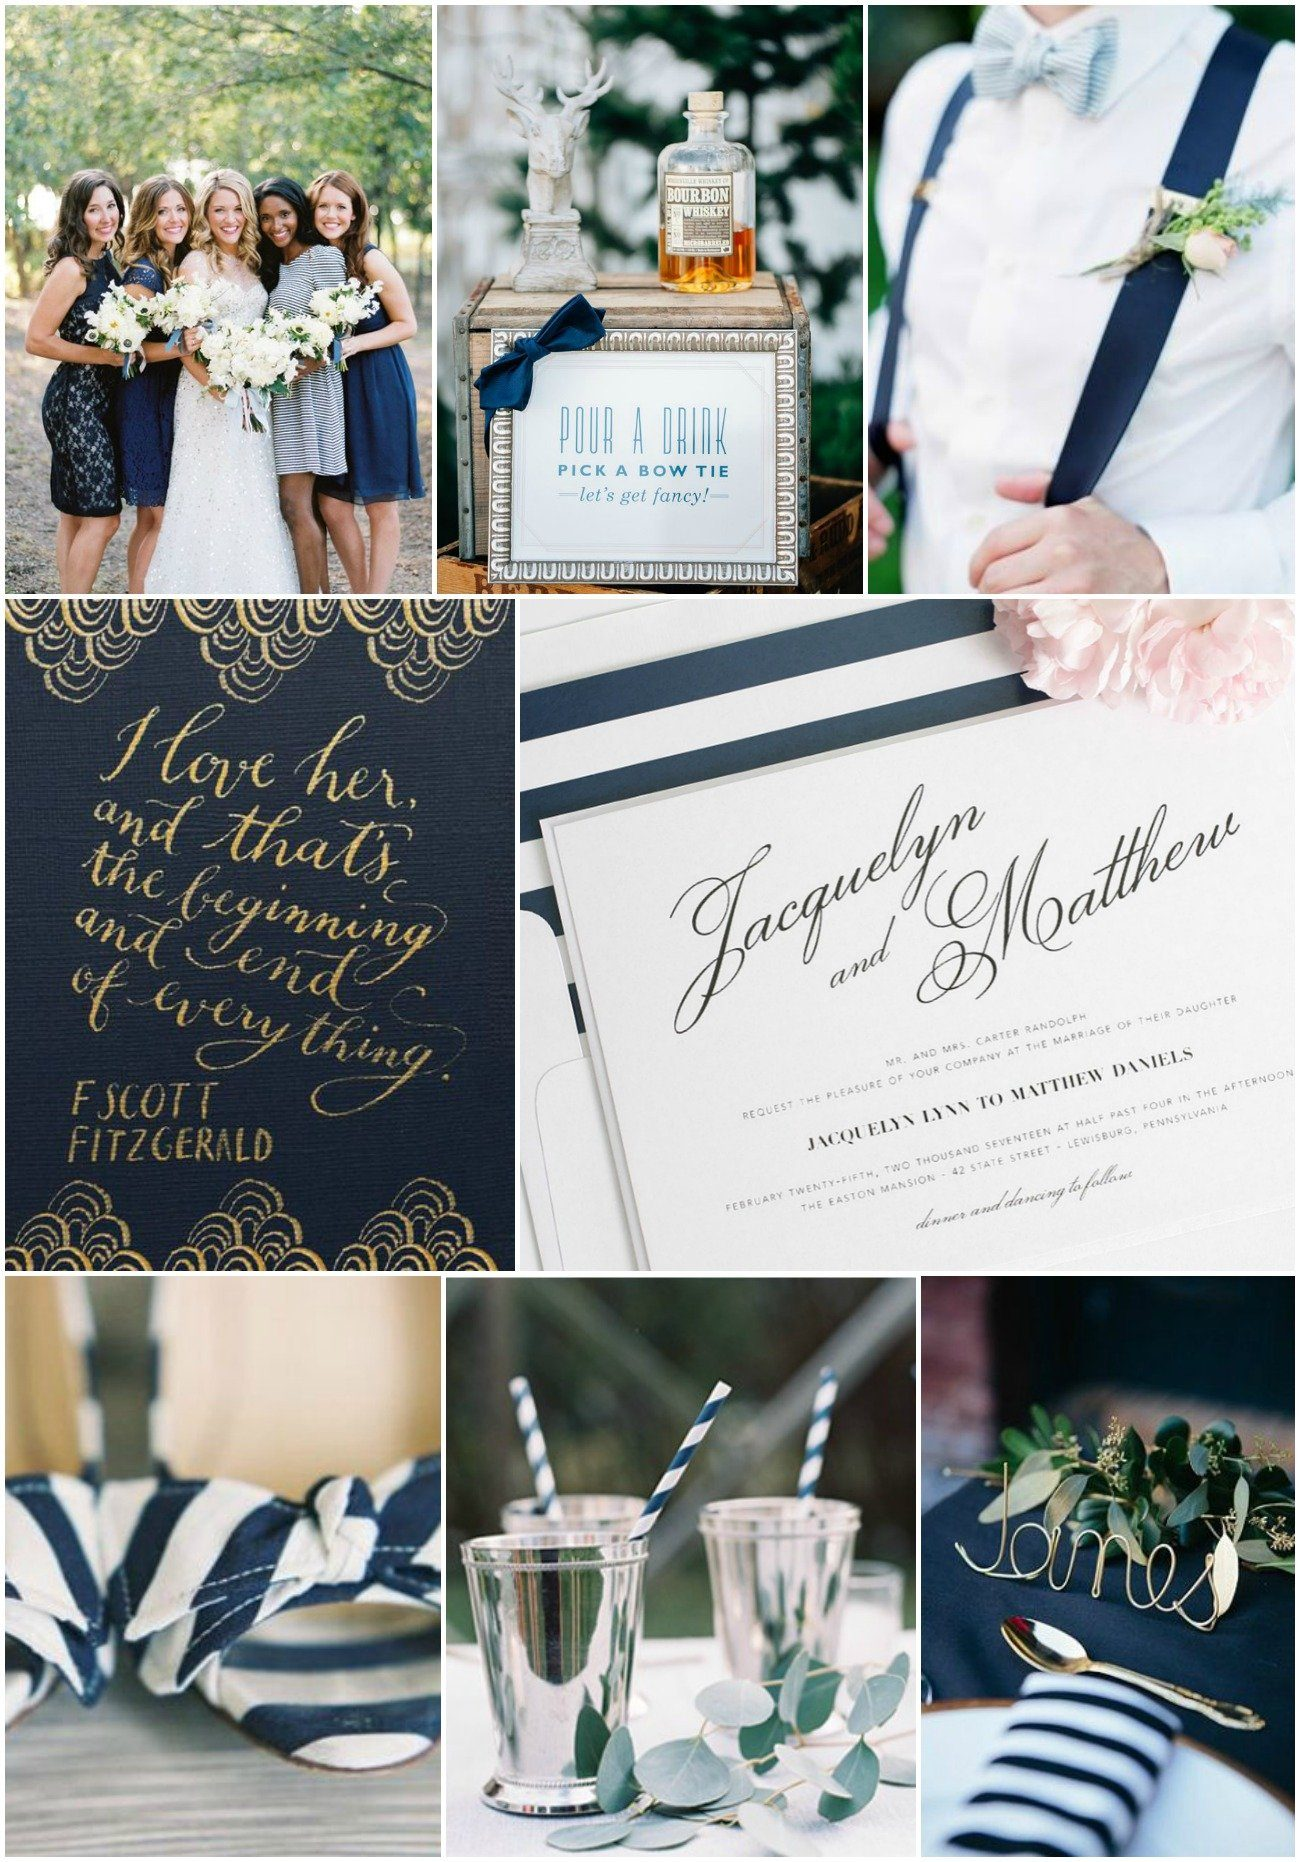 Vintage romance wedding inspiration with navy stripes